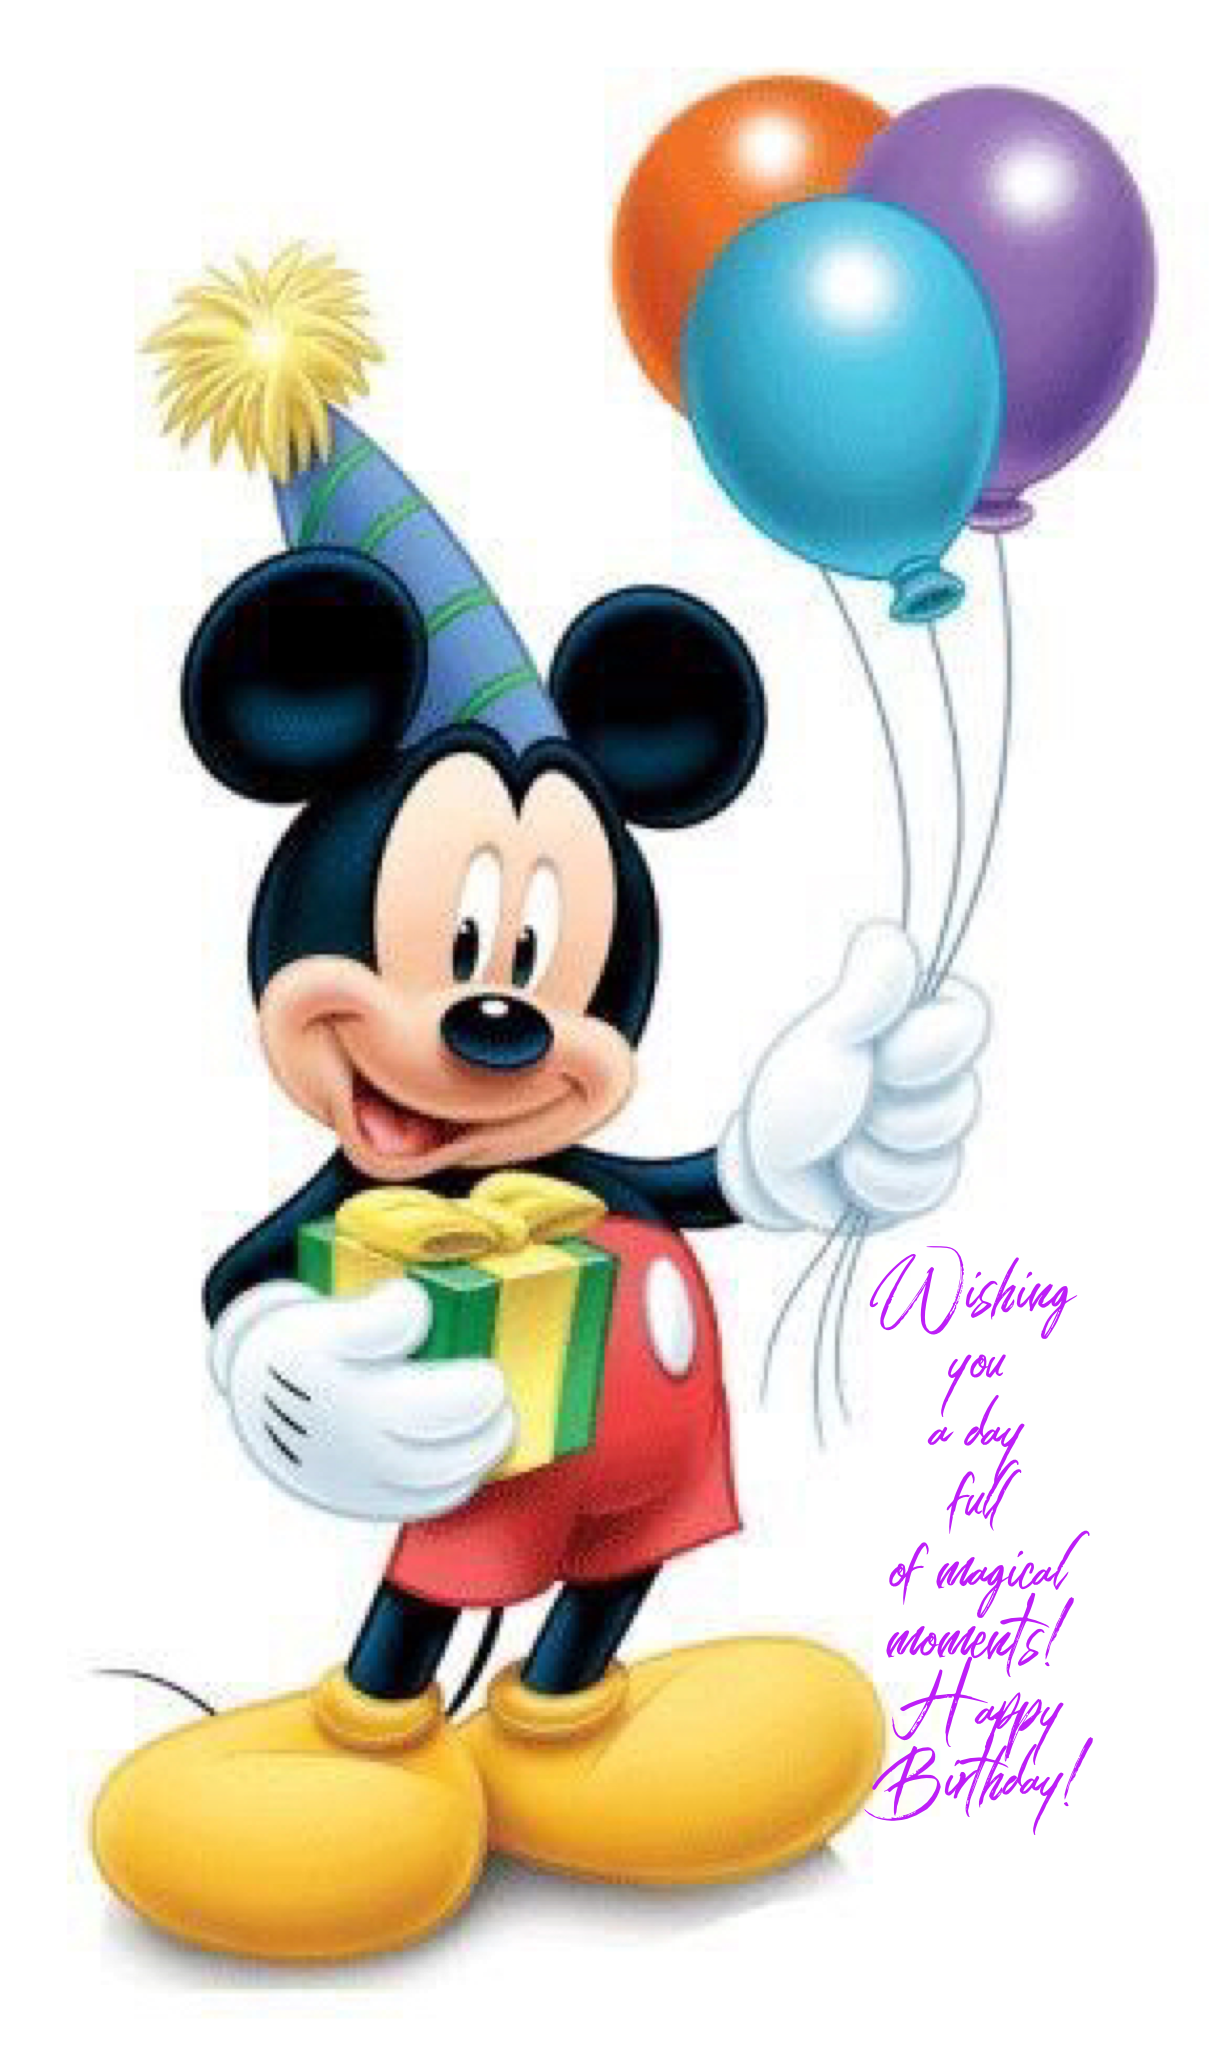 Magical Moments Happy Birthday Mickey Mouse Pictures Mickey